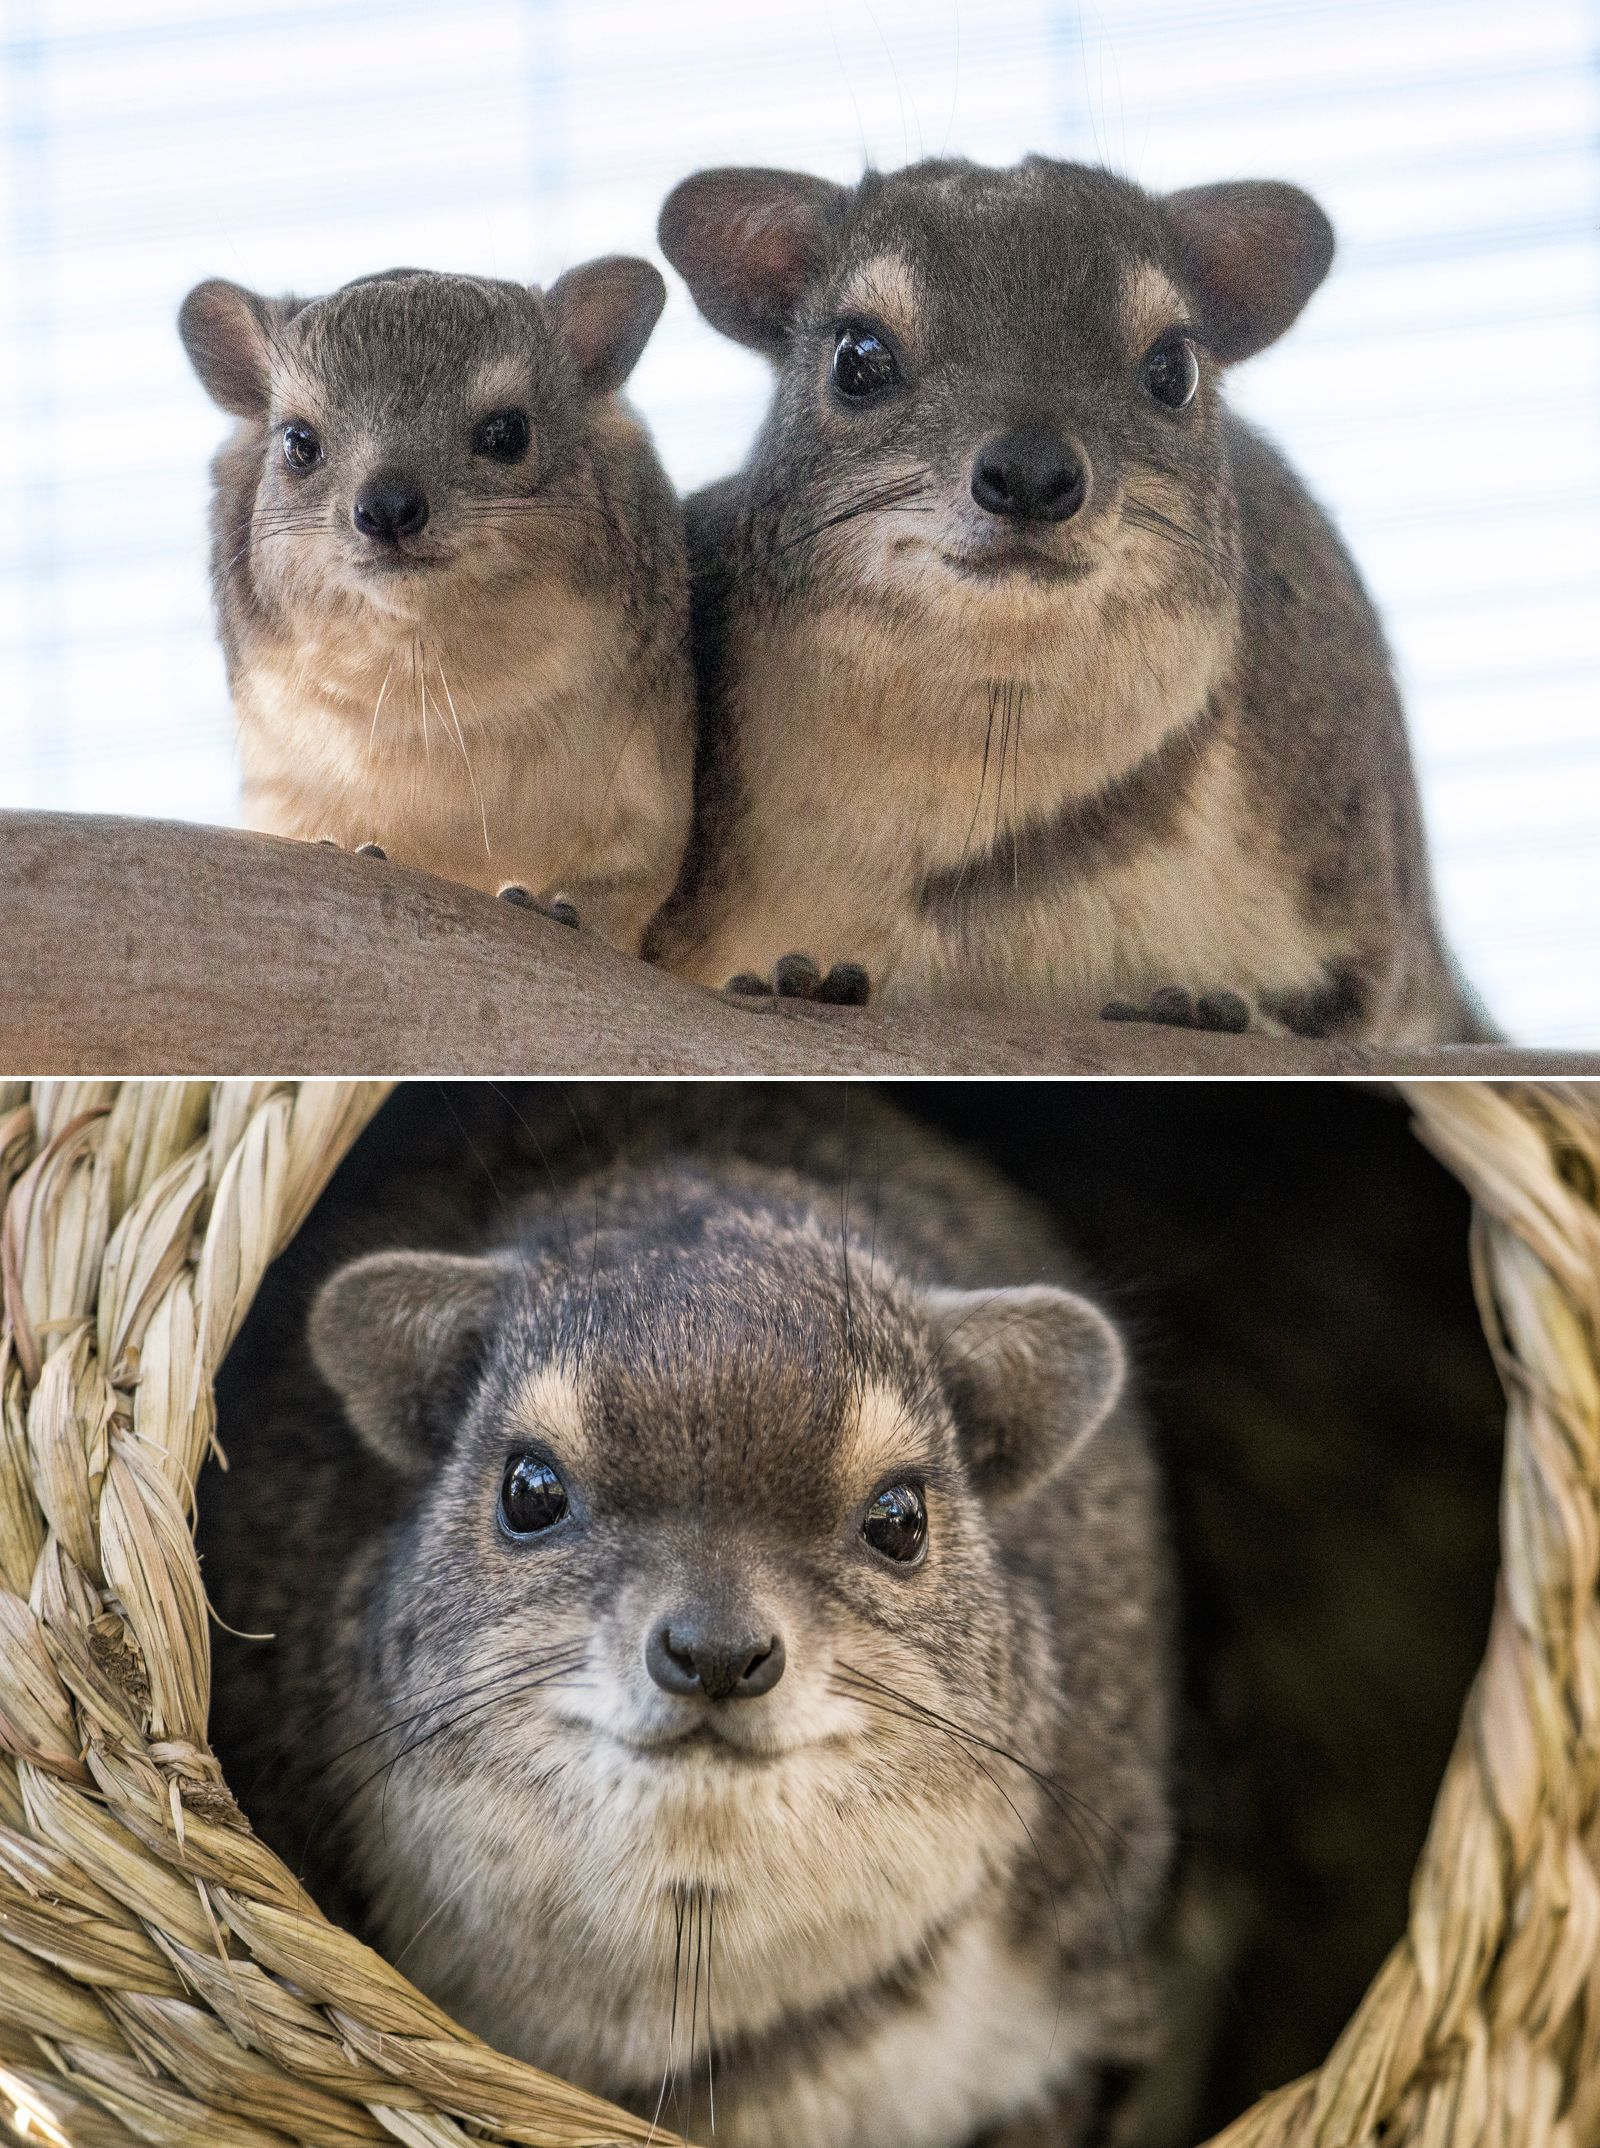 Hyraxes have an identity problem. These small, unassuming